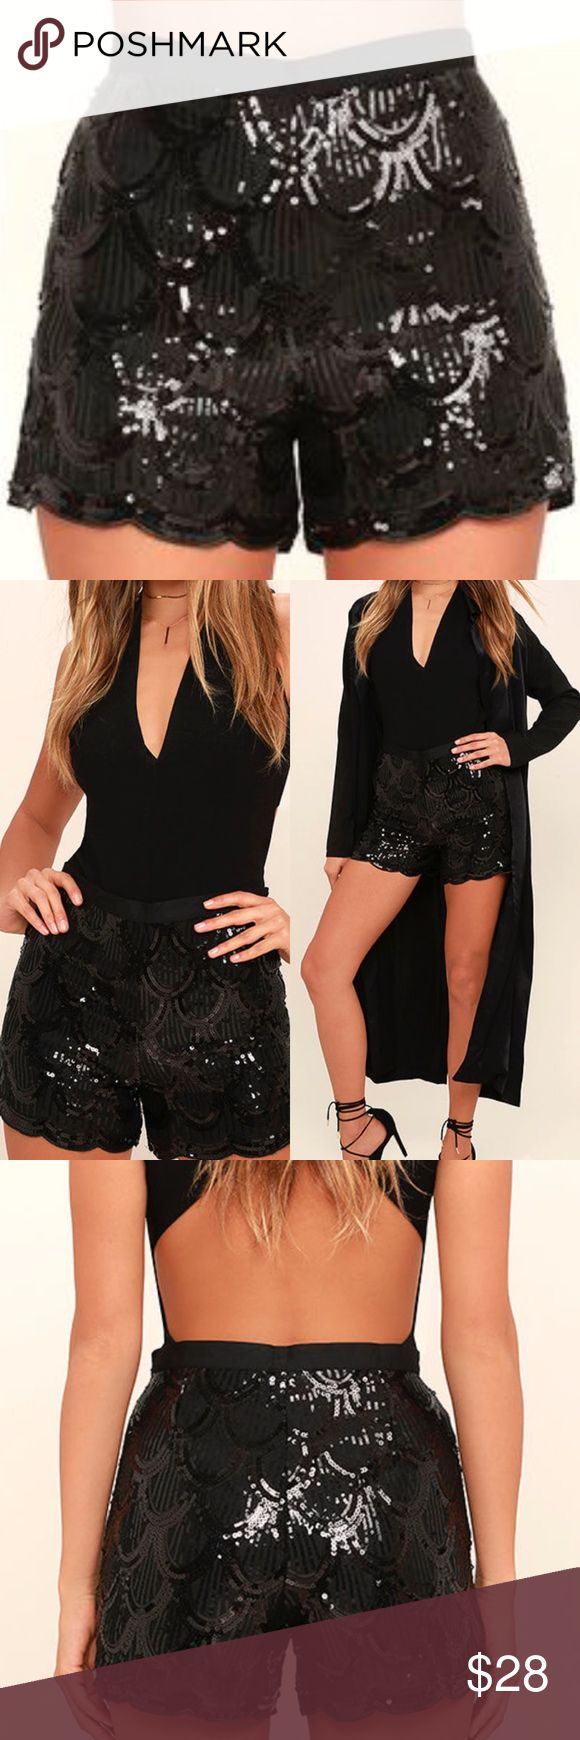 Black sequin shorts by IF BY SEA new Black sequins create a scalloped pattern across these high waisted shorts with a banded waist and matching scalloped hens. These can be paired with a plain white tee and ankle boots or dressed up for any occasion year round! Skirts Mini